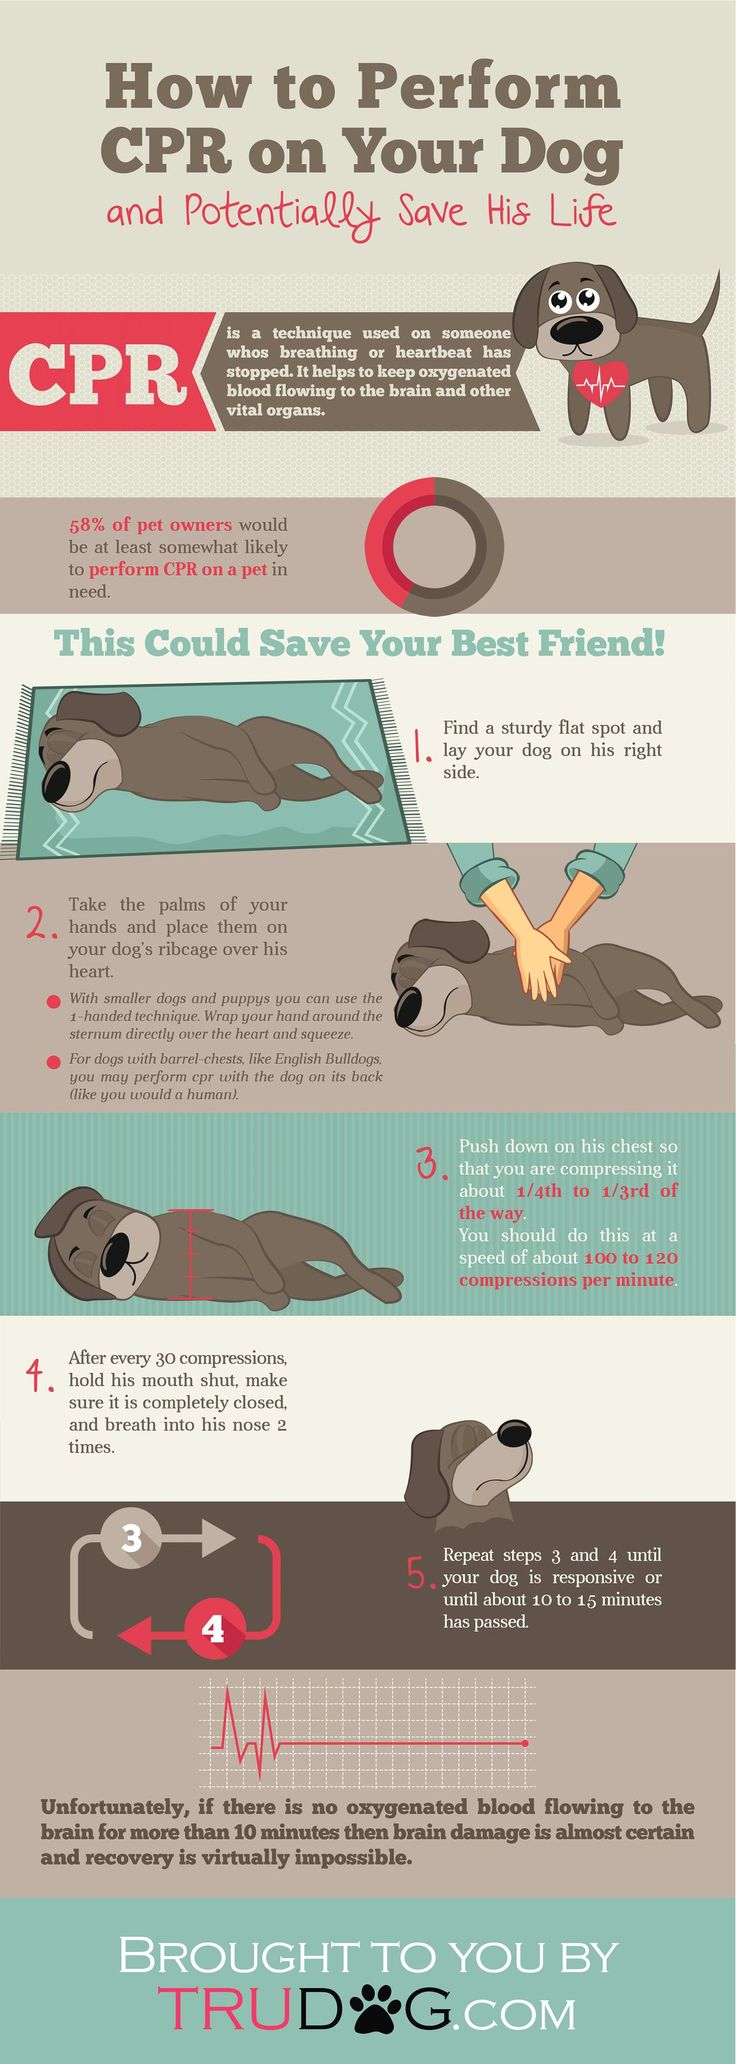 [INFOGRAPHIC] HOW to Perform CPR on Your Dog